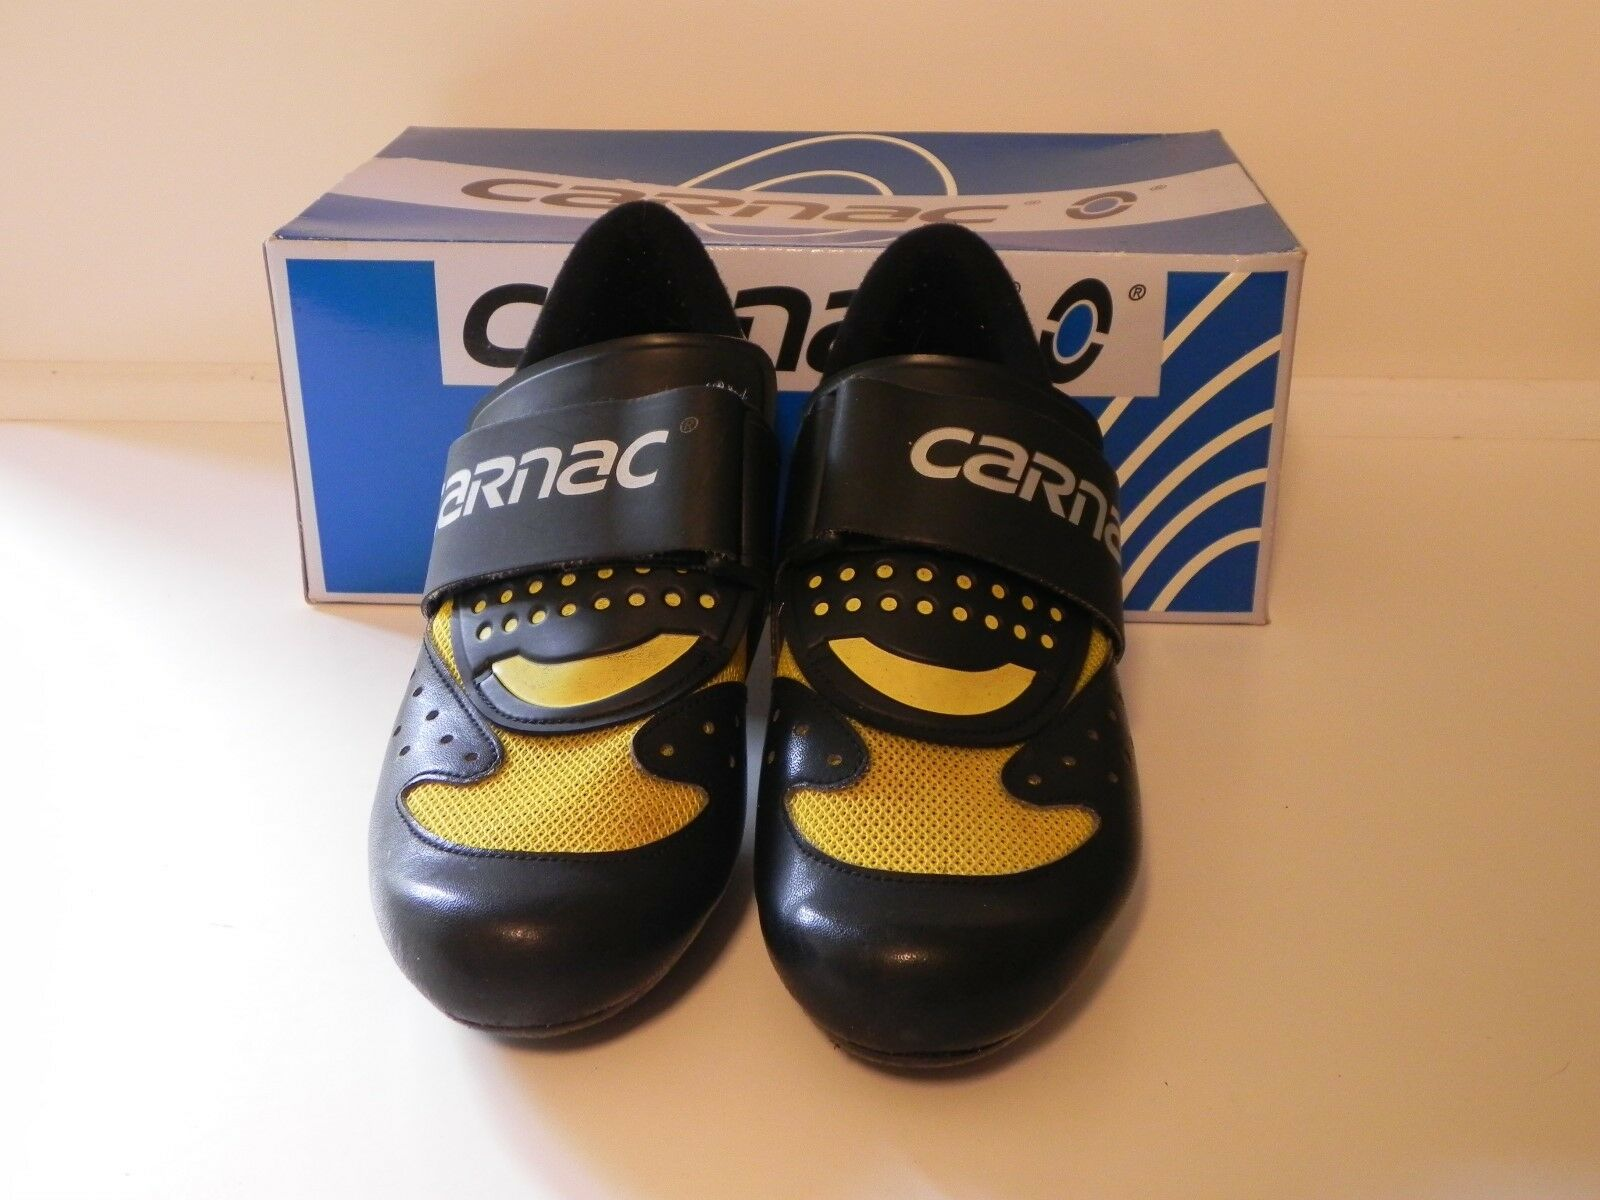 CARNAC CYCLING SHOES LADIES EURO. SIZE 38 WITH INSERT FOR SPD PEDALS